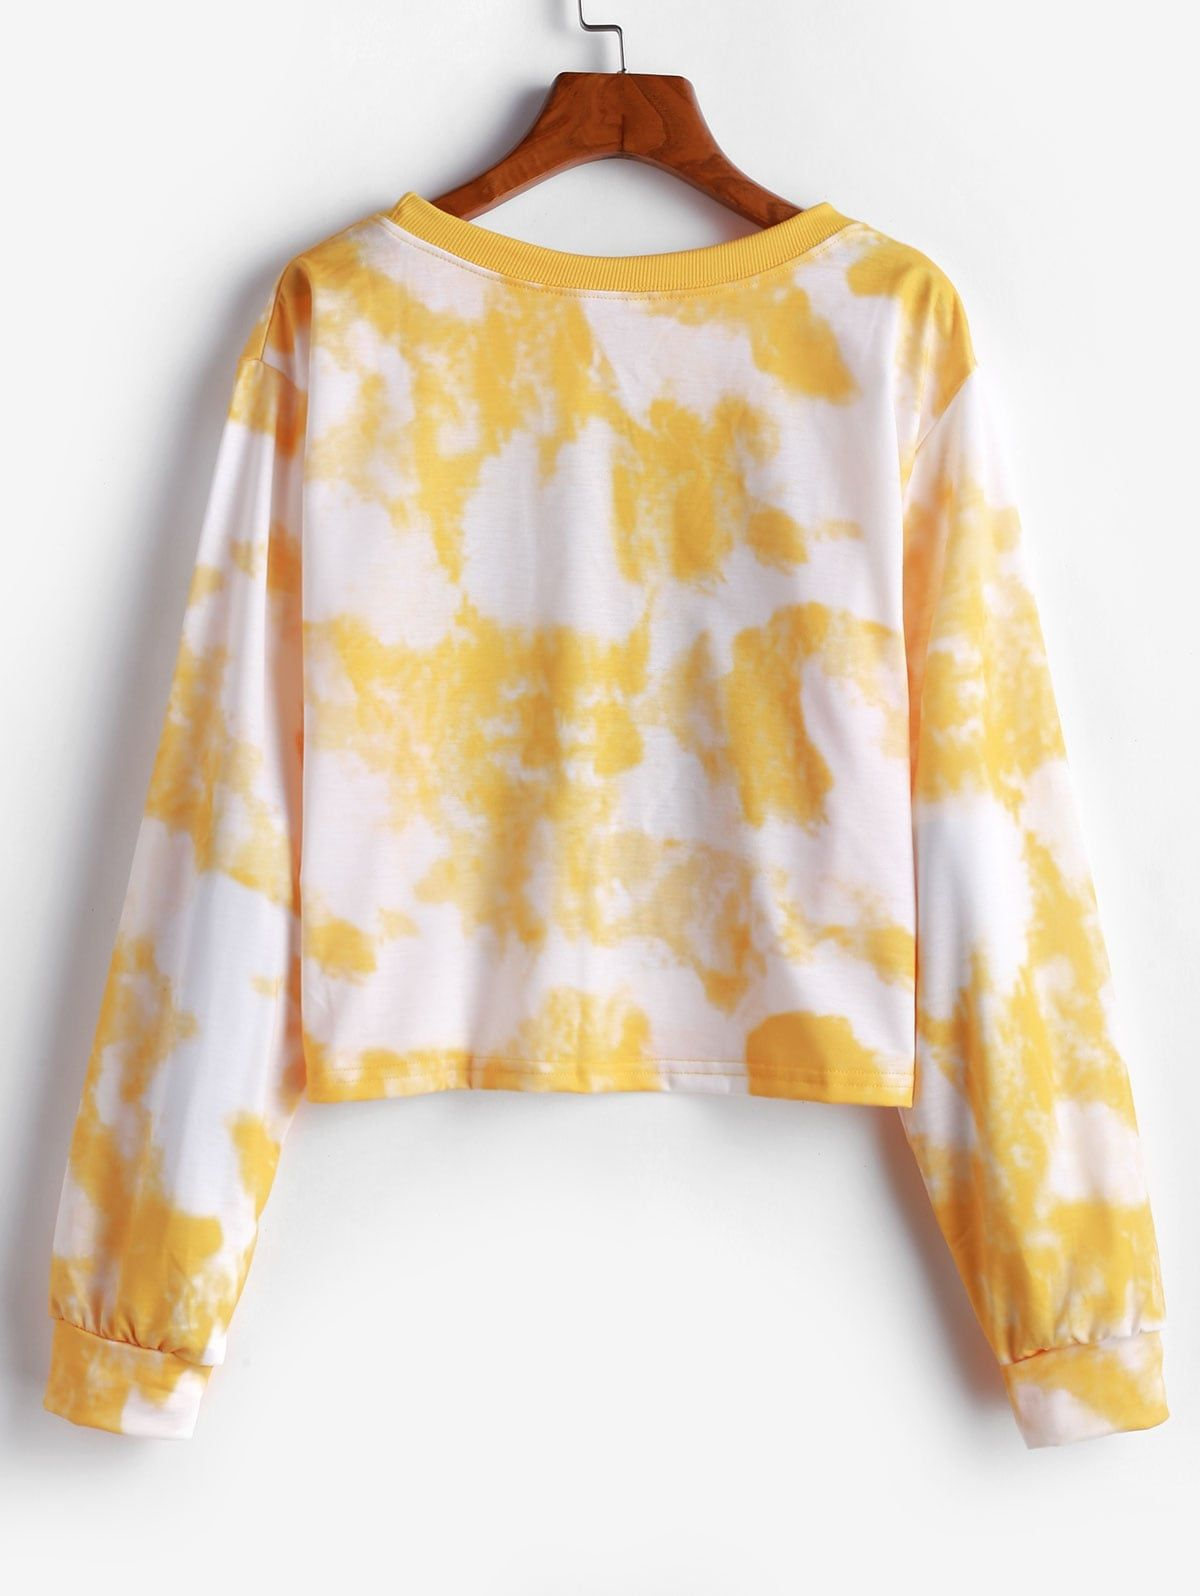 Pullover Floral Sun Tie Dye Sweatshirt YELLOW , Affiliate